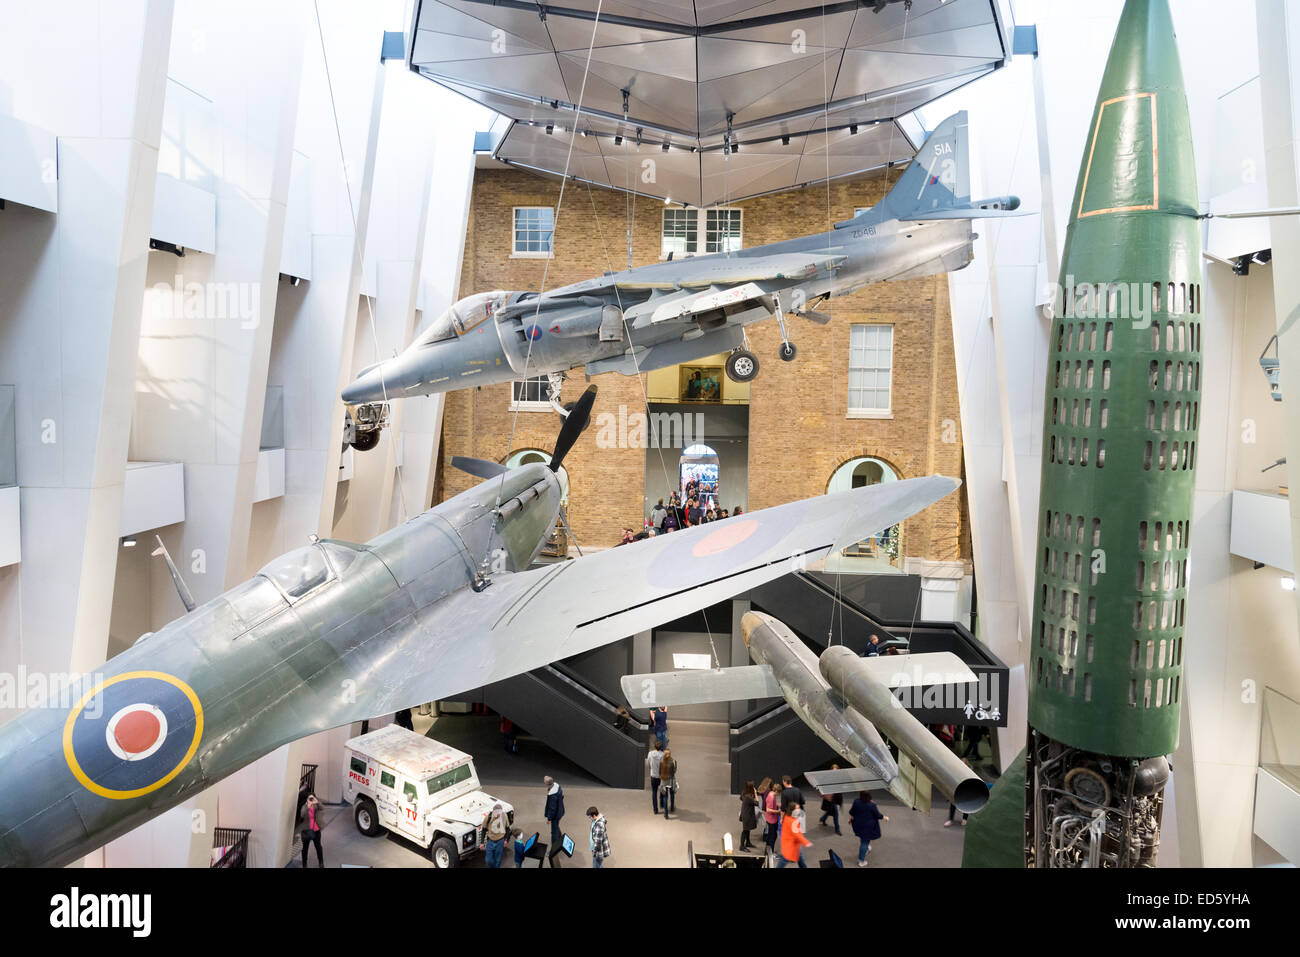 The Imperial War Museum, London, England, UK - Stock Image